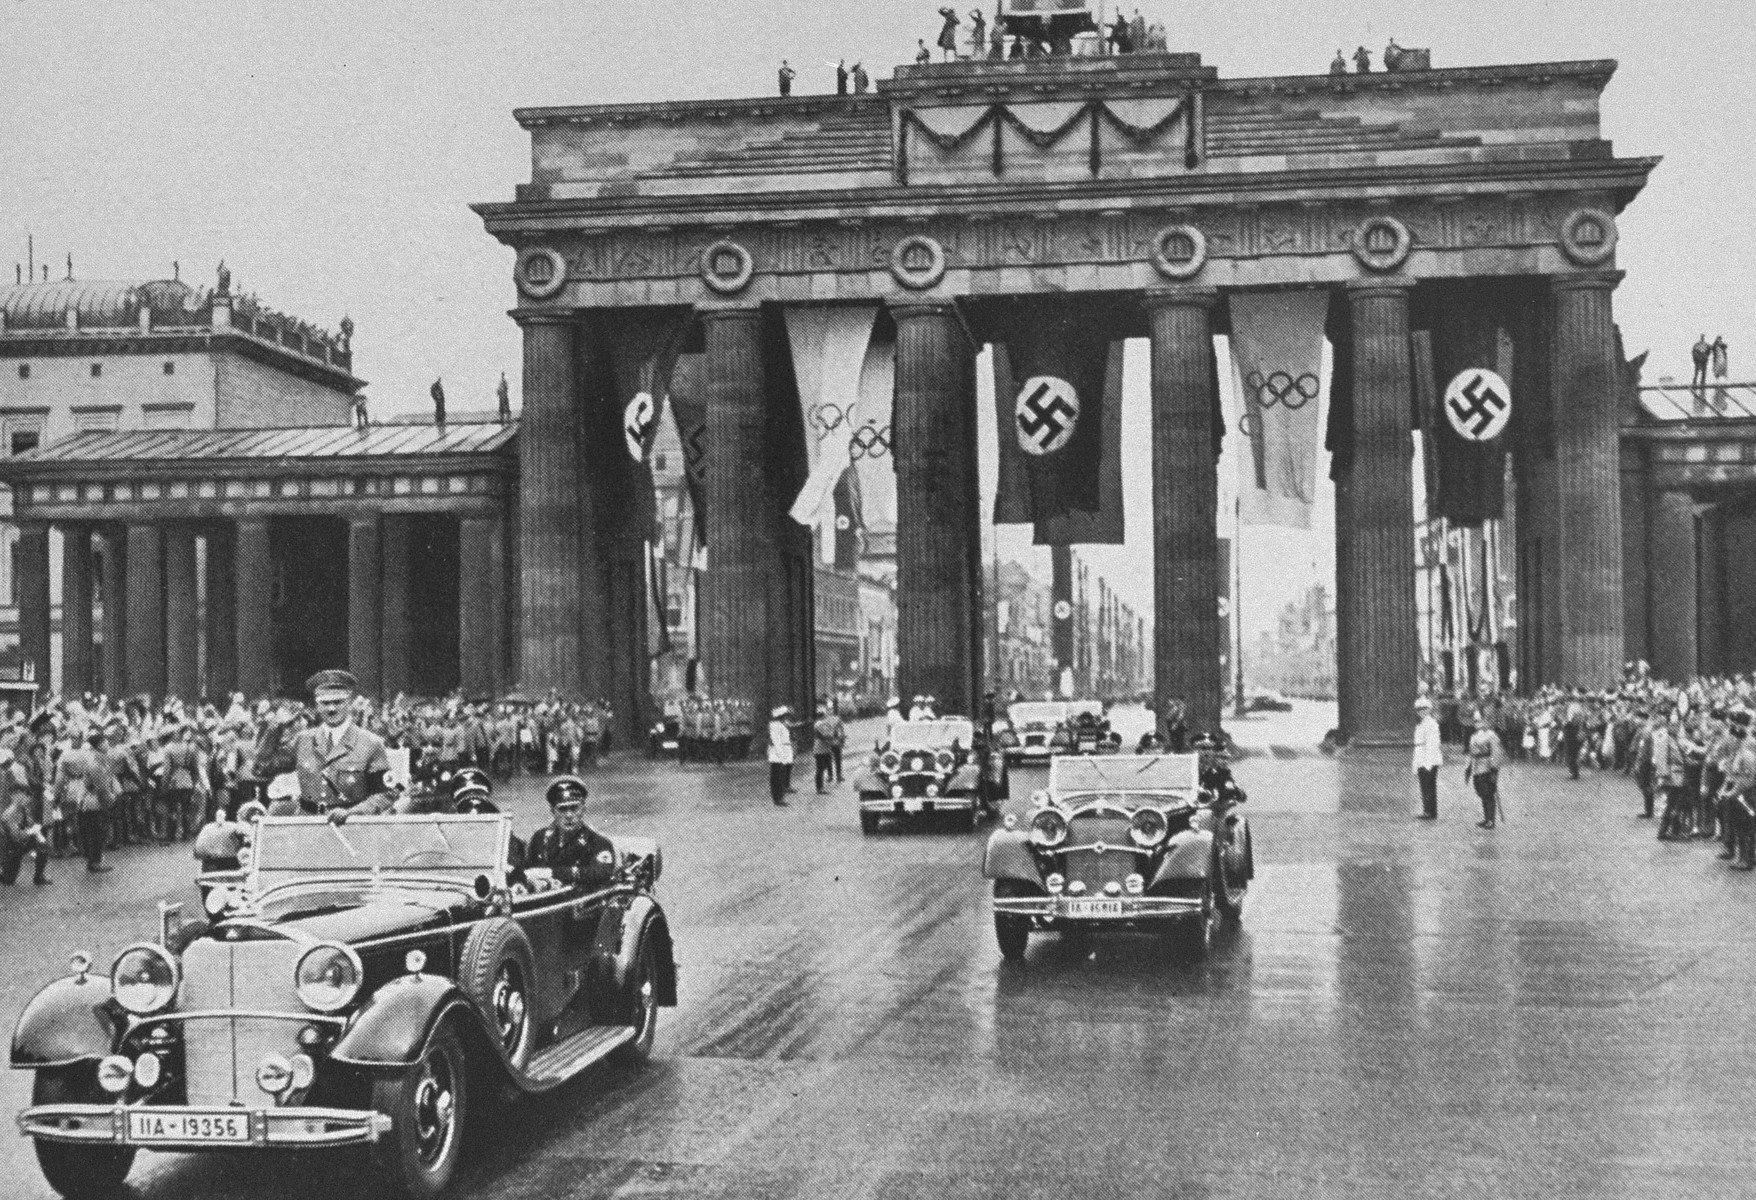 Adolf Hitler rides in a motorcade through the Brandenburg Gate to the opening ceremonies of the 11th Olympiad in Berlin.